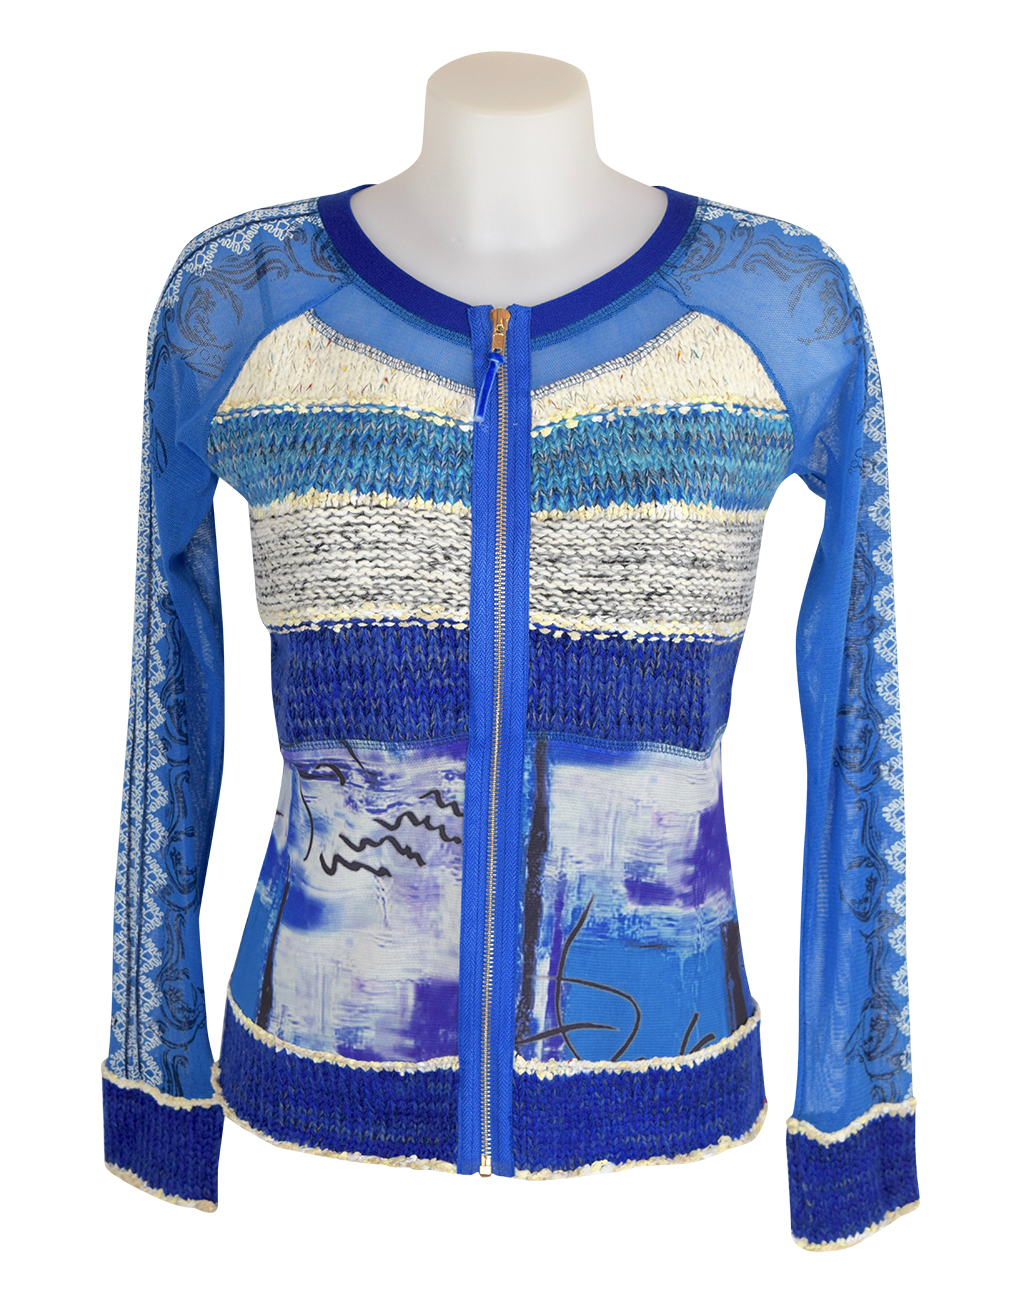 Lulu H Blue & Turquoise Zipped Top1